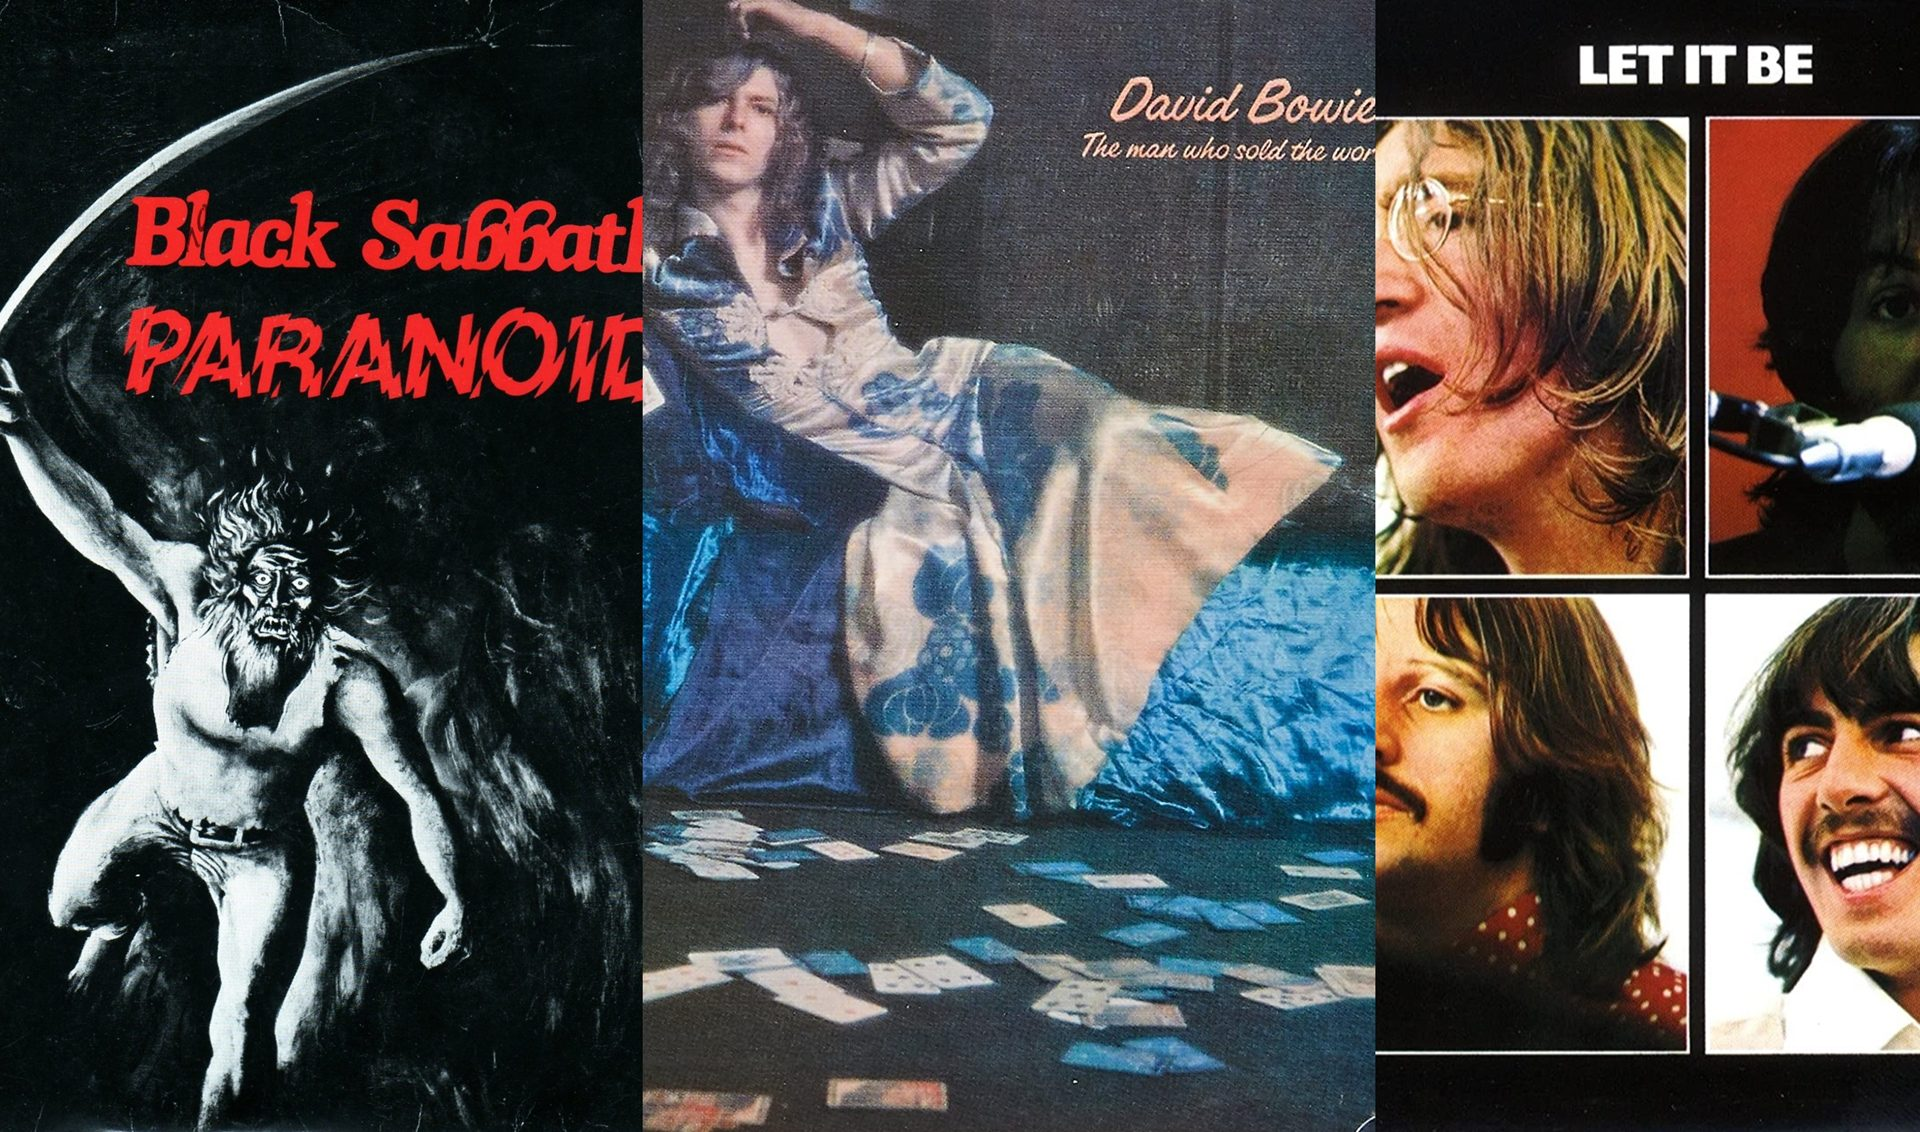 Paranoid, Black Sabtah, David Bowie, The man who sold the world Beatles, Let it be